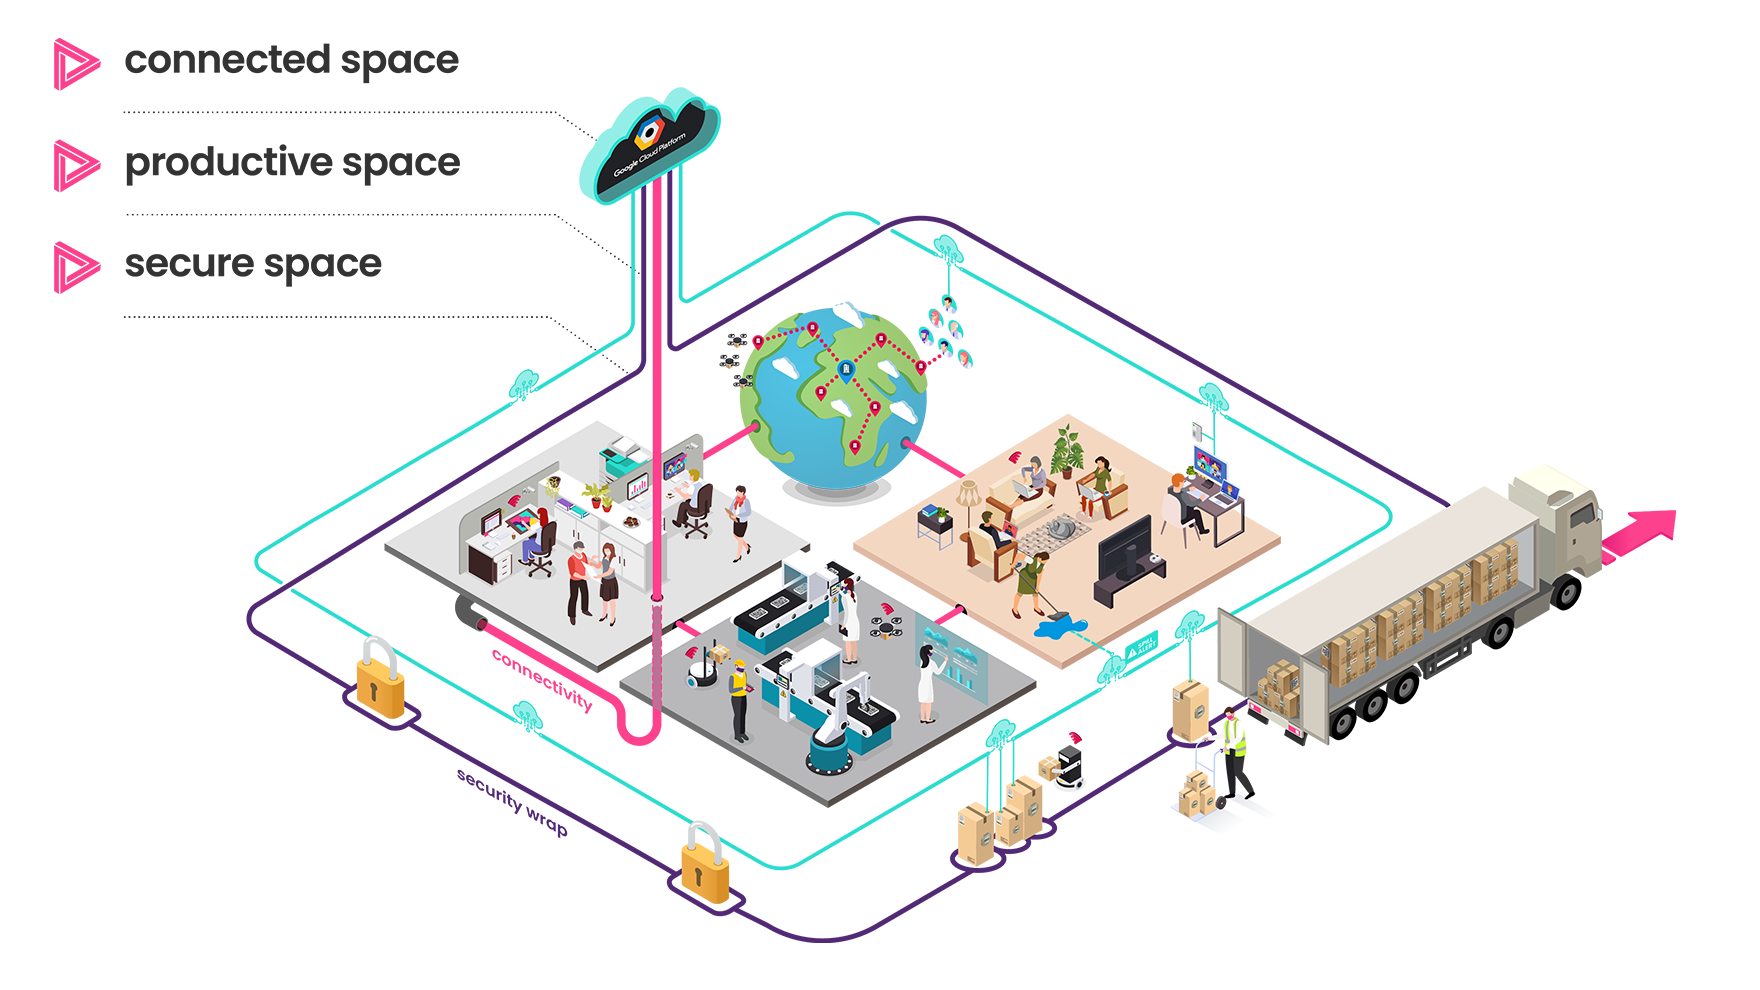 Digital Space - Manufacturing and Construction